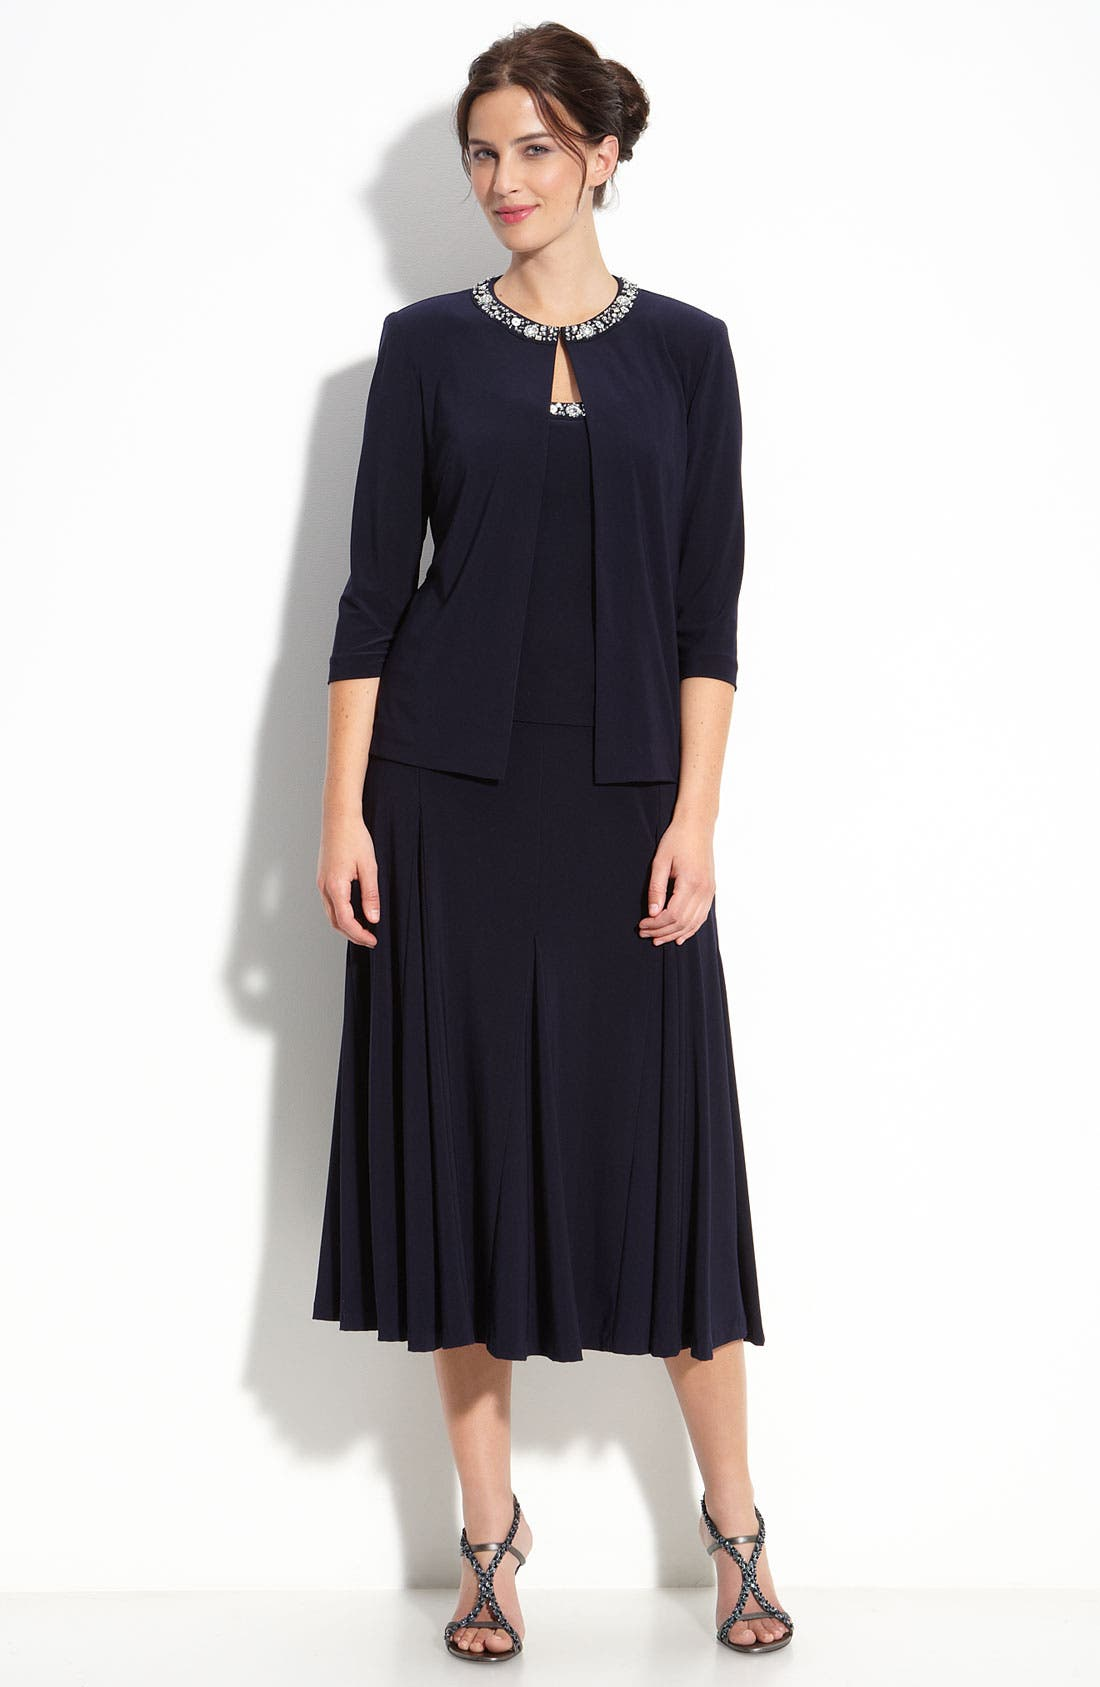 Main Image - Alex Evenings Beaded Jersey Dress & Jacket